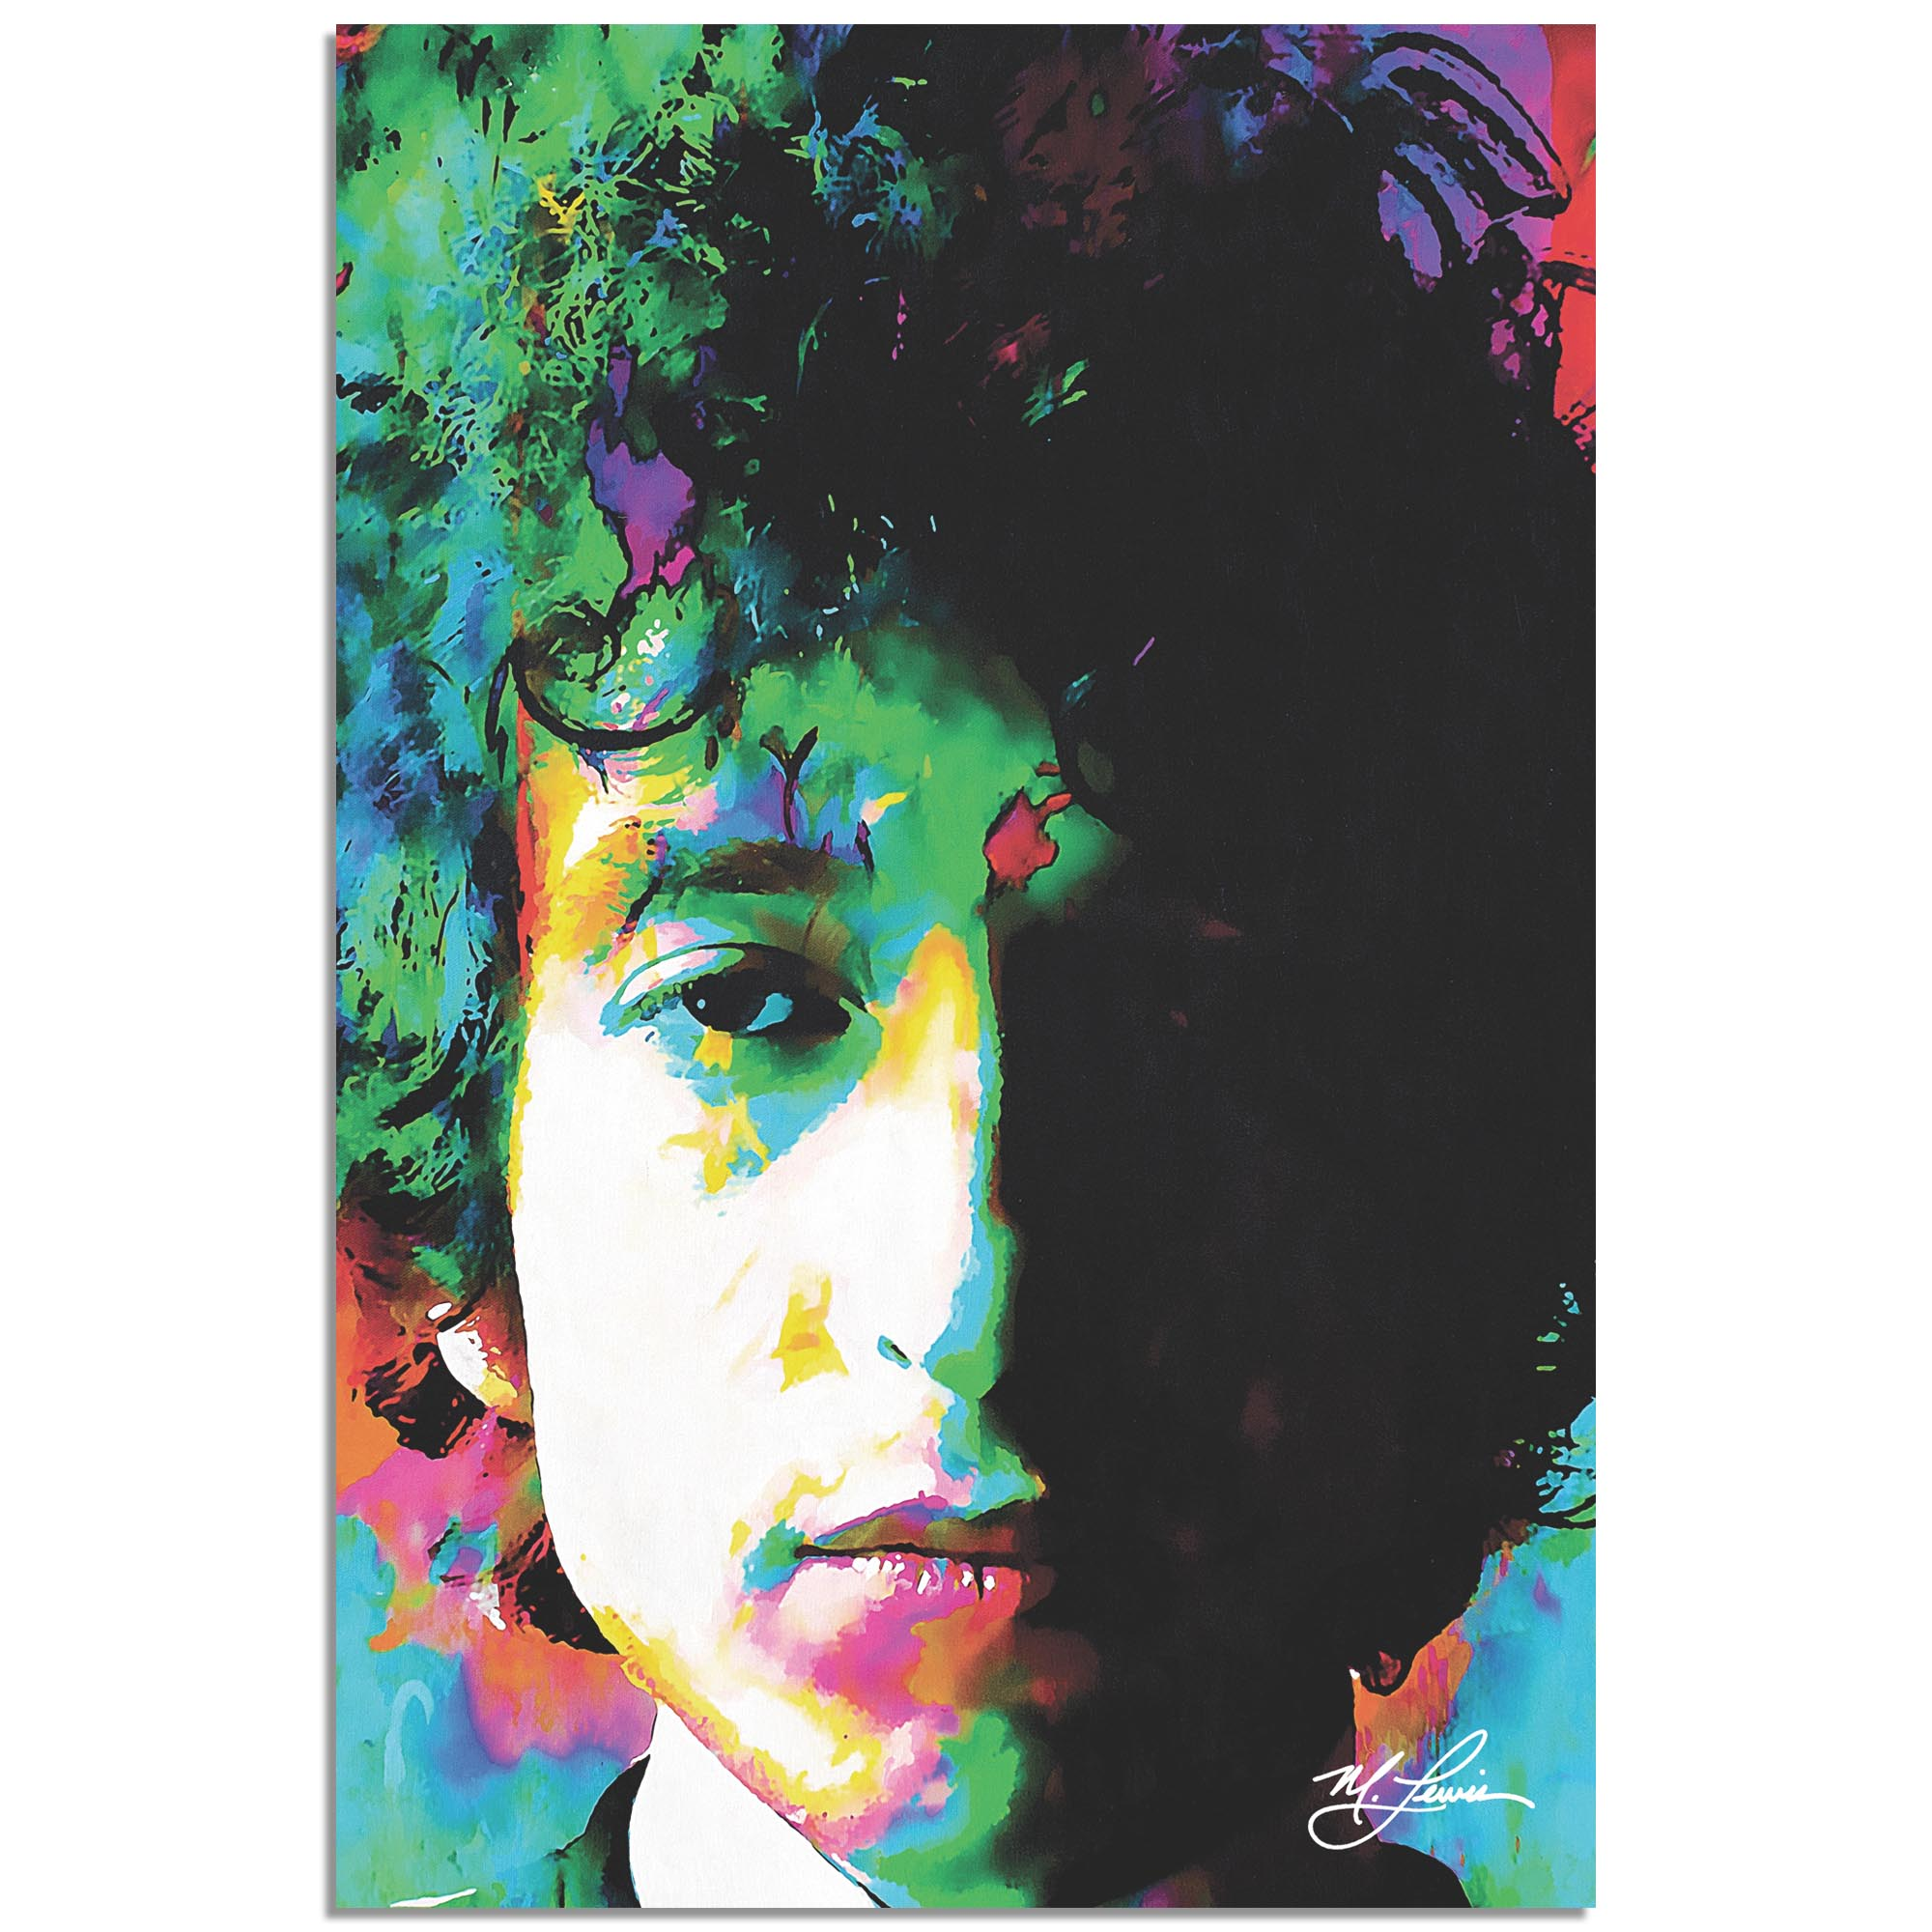 Mark Lewis 'Bob Dylan Natural Memory' 22in x 32in Celebrity Pop Art on Metal or Plexiglass